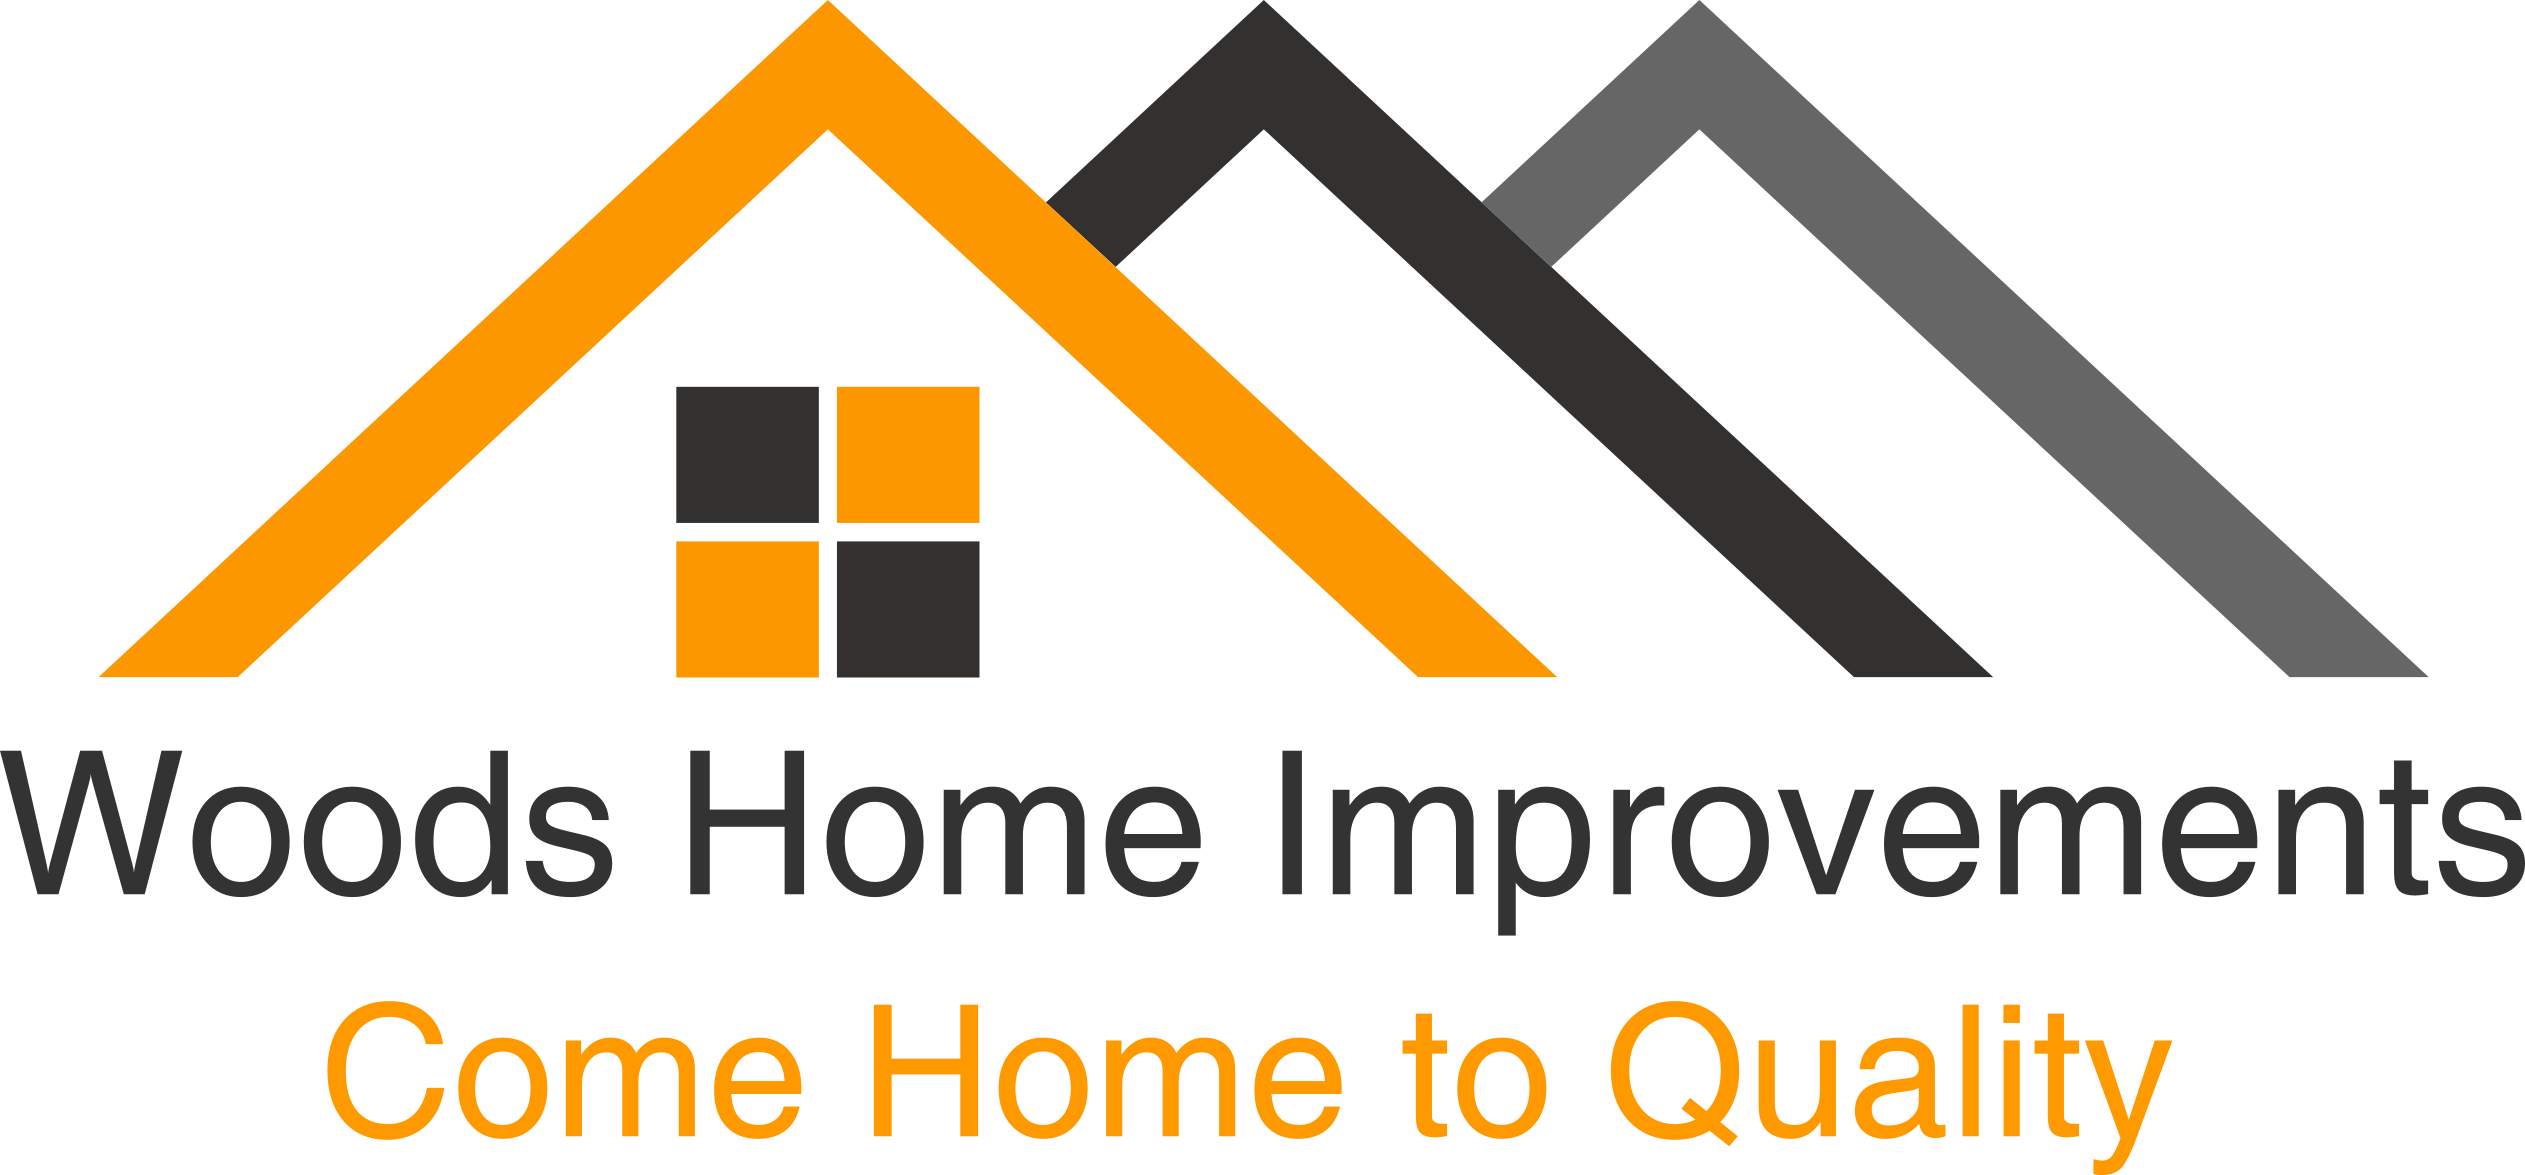 Logos house repairs png. Home remodeling company logo